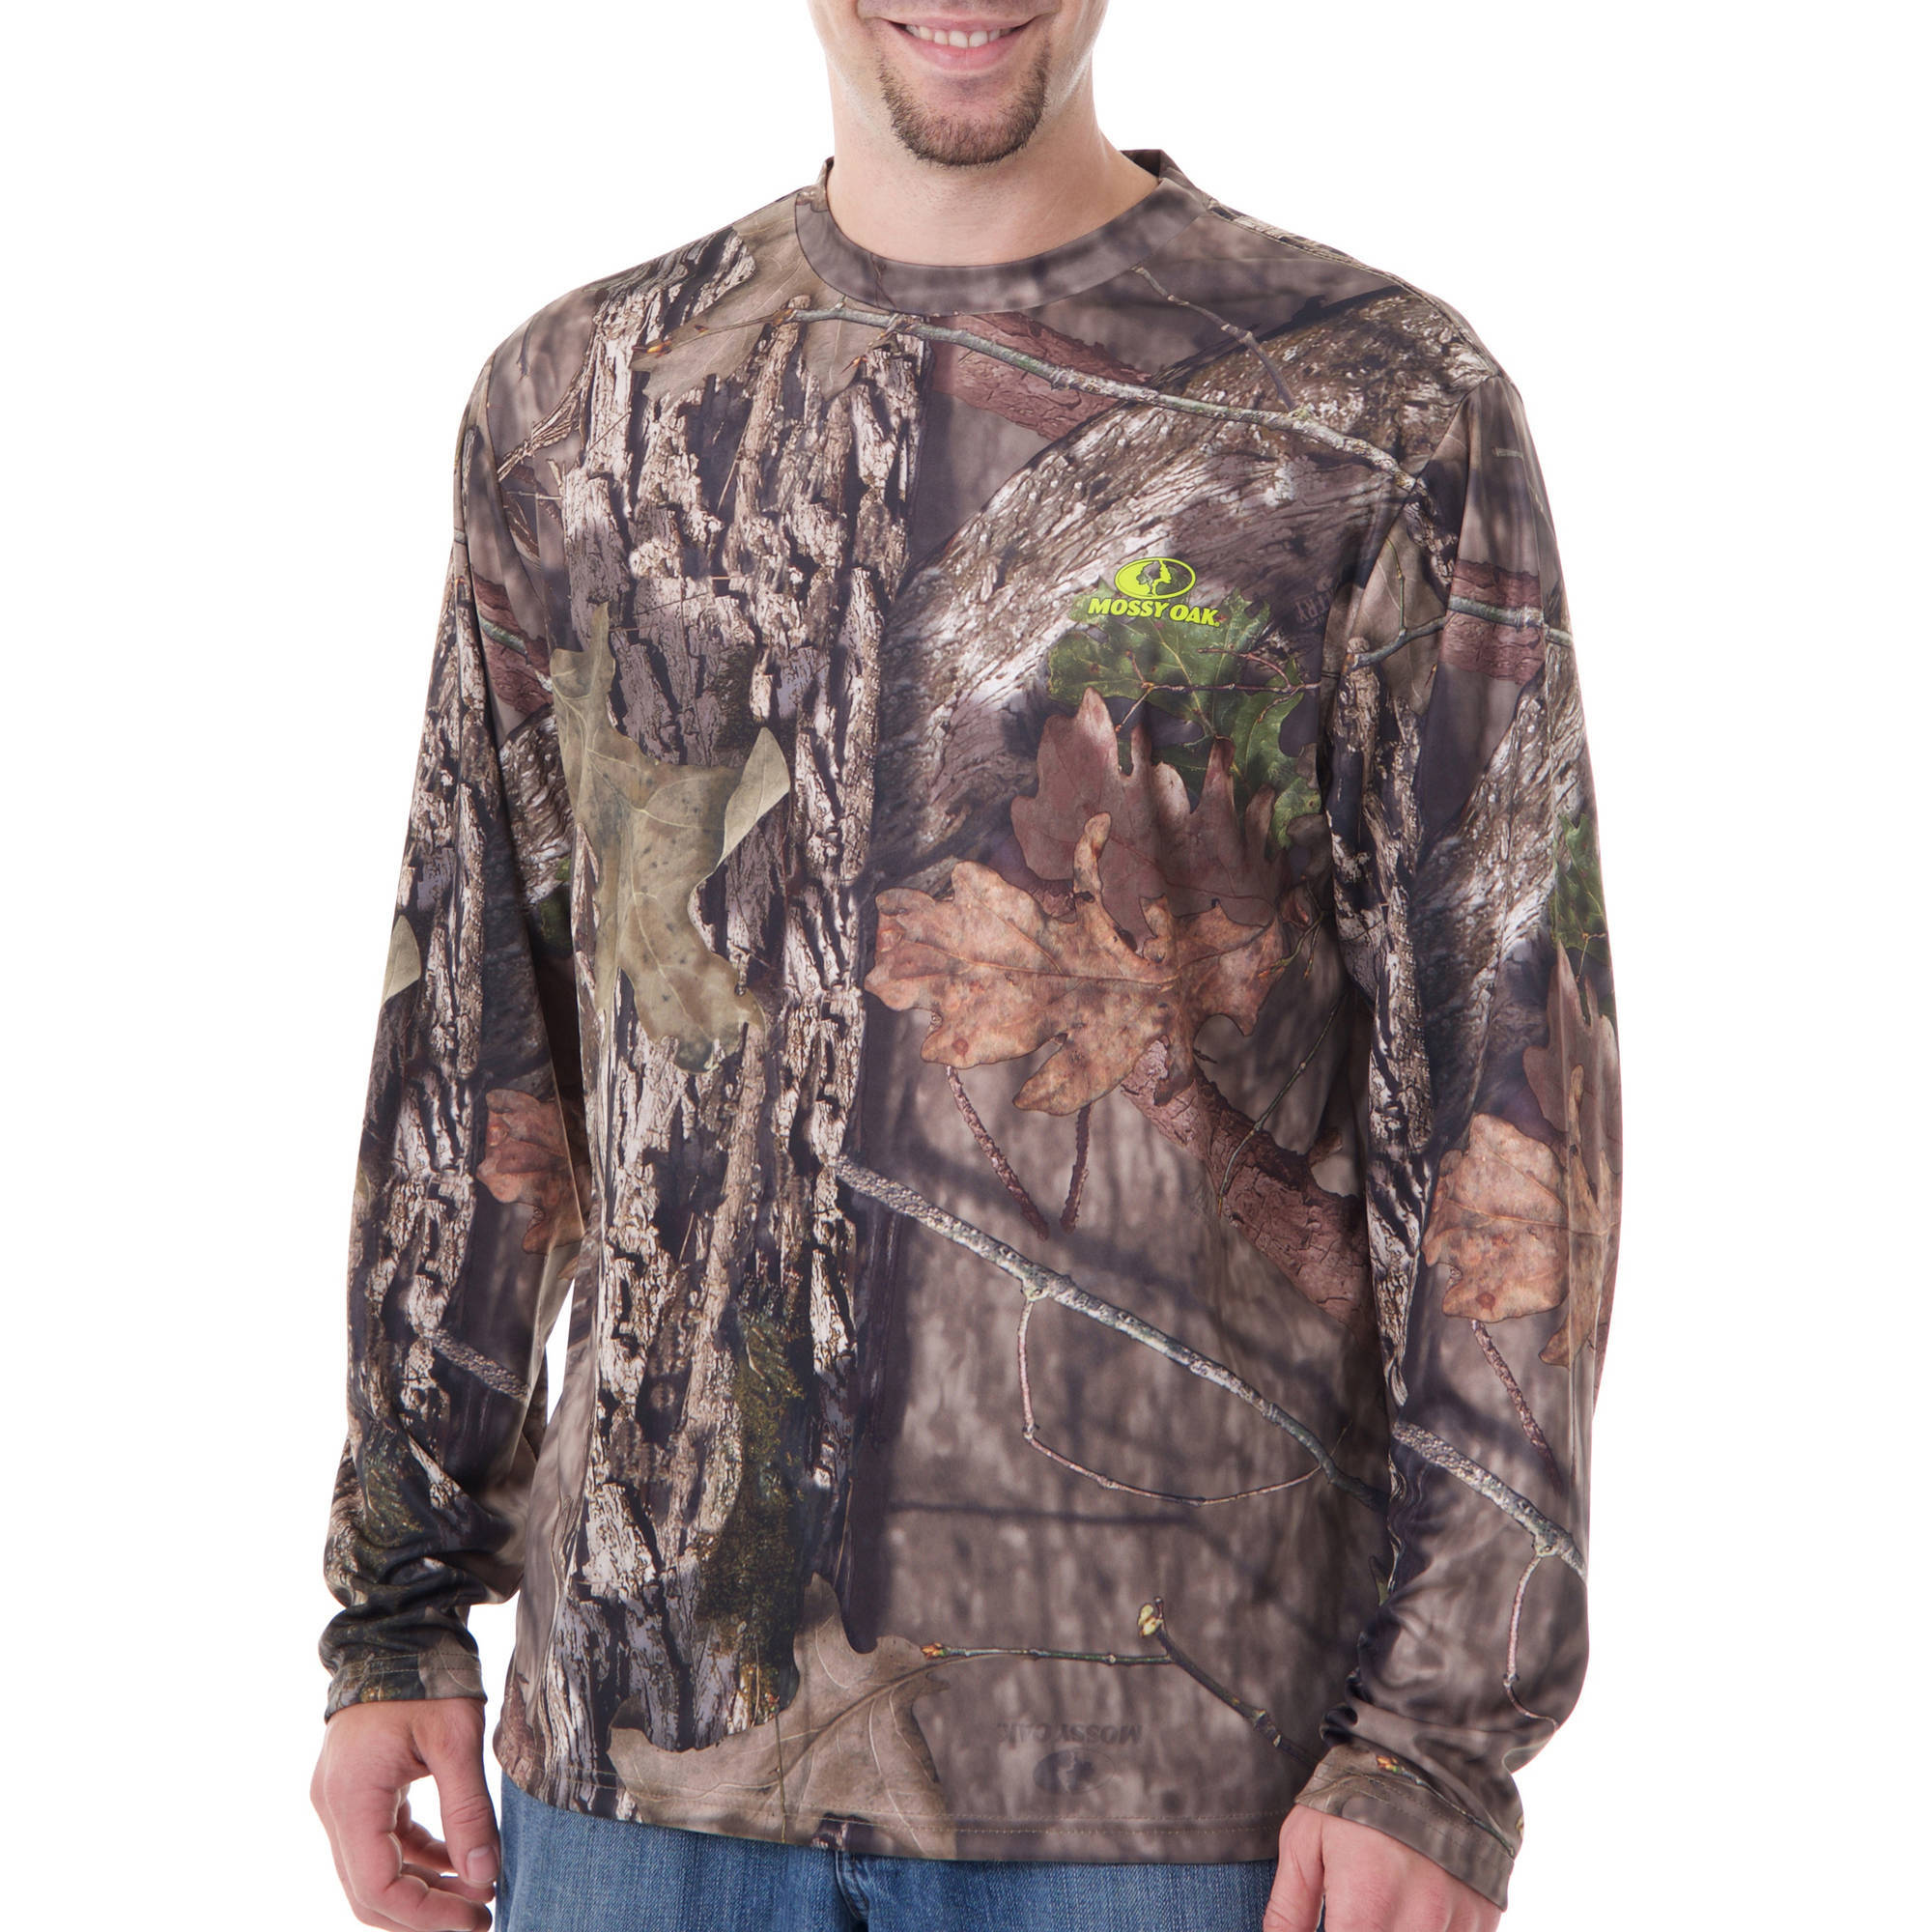 Realtree and Mossy Oak Men's Long Sleeve Camo Performance Tee